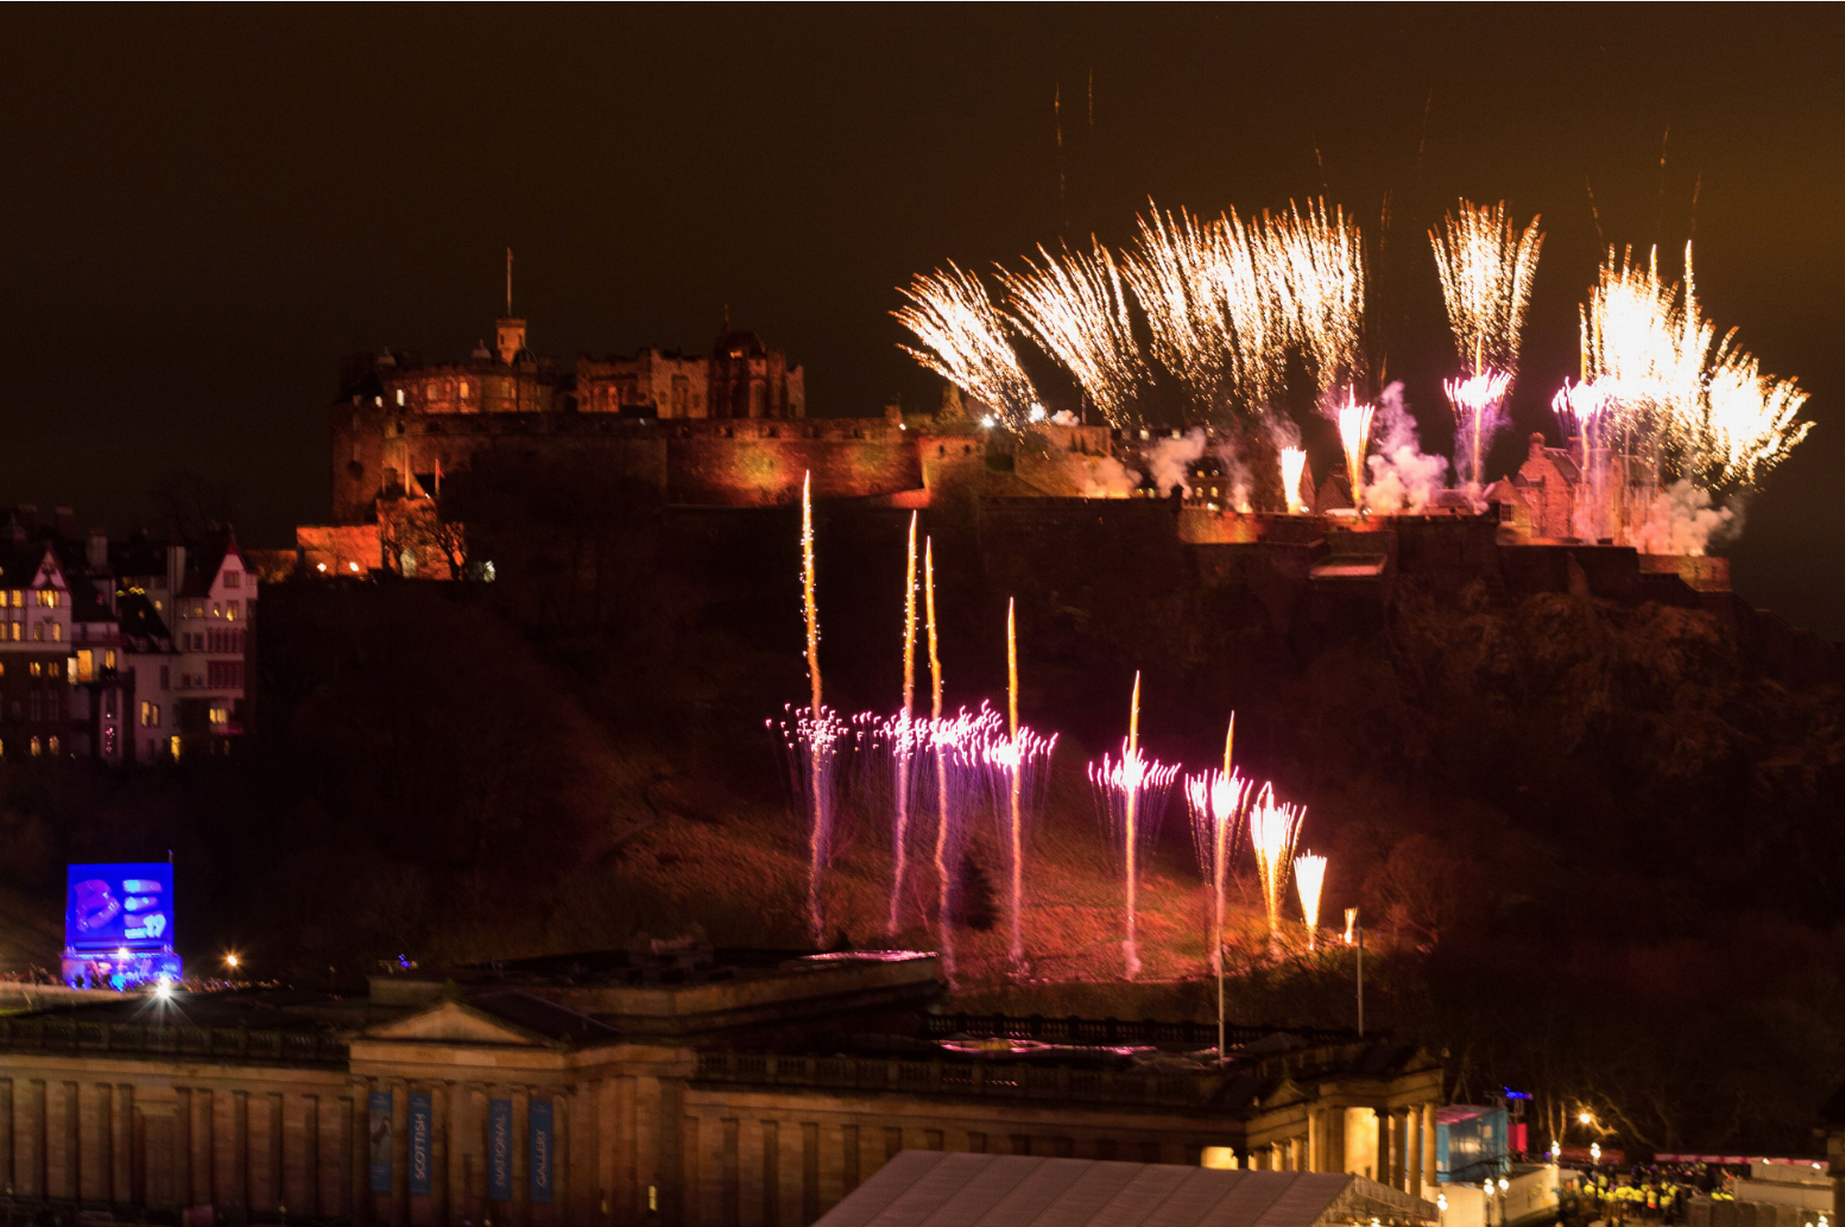 Some of the best photos from Edinburgh's Hogmanay street